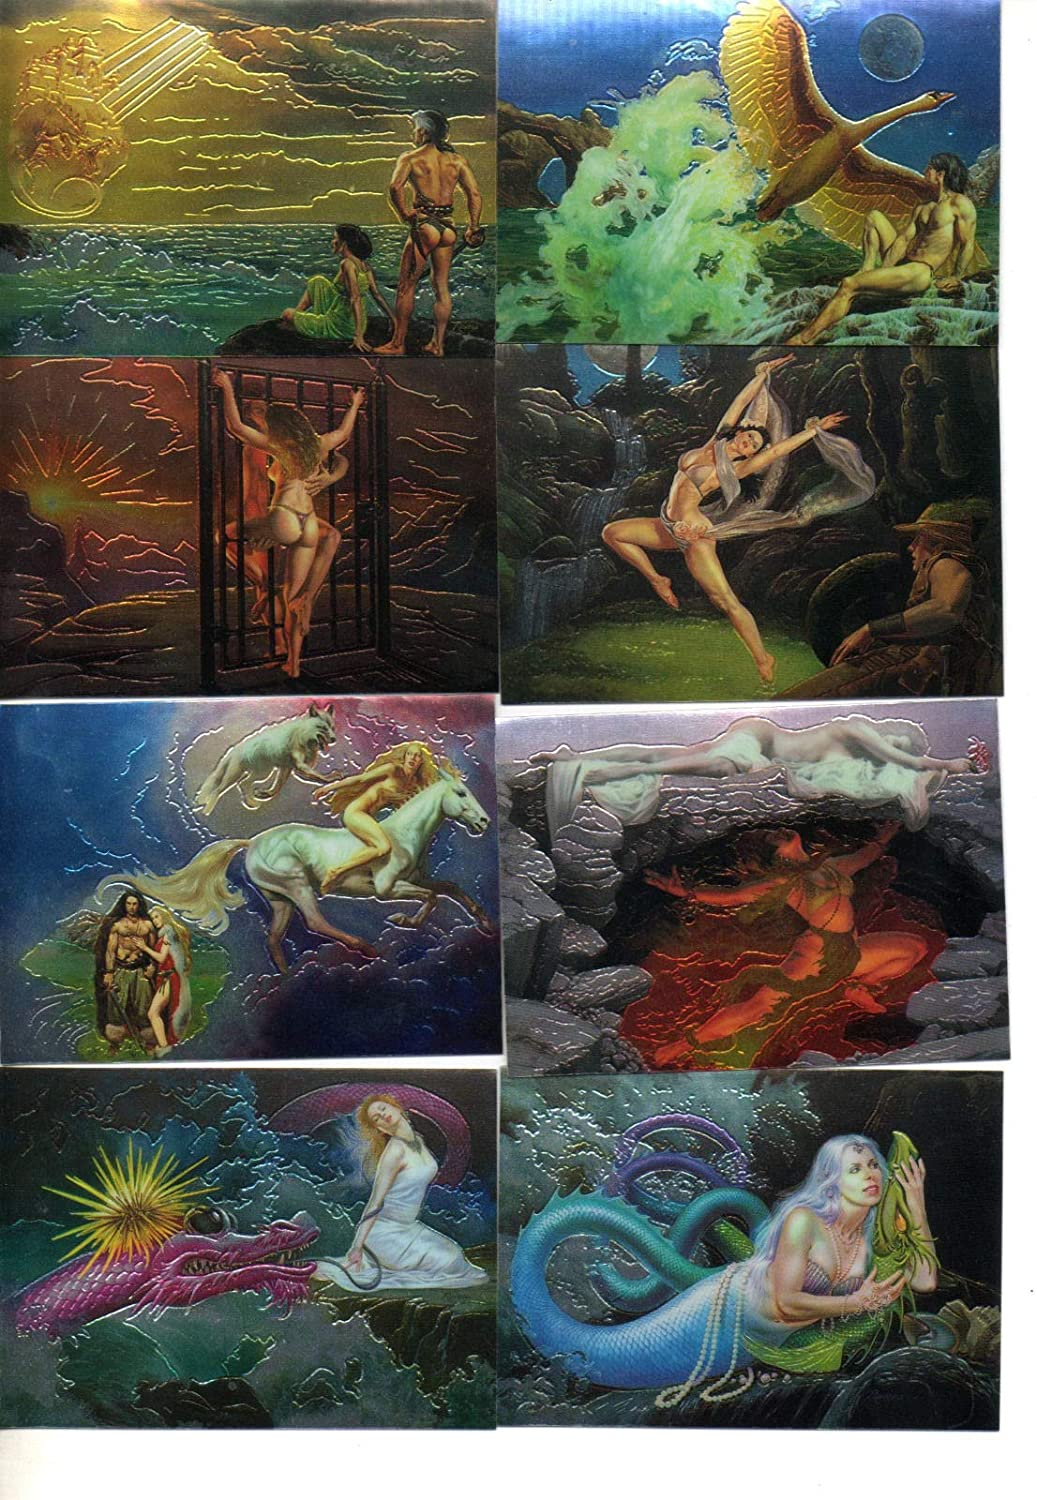 The Best of Rowena Complete 90 All Chromium Fantasy Art Trading Card Set FPG 1996